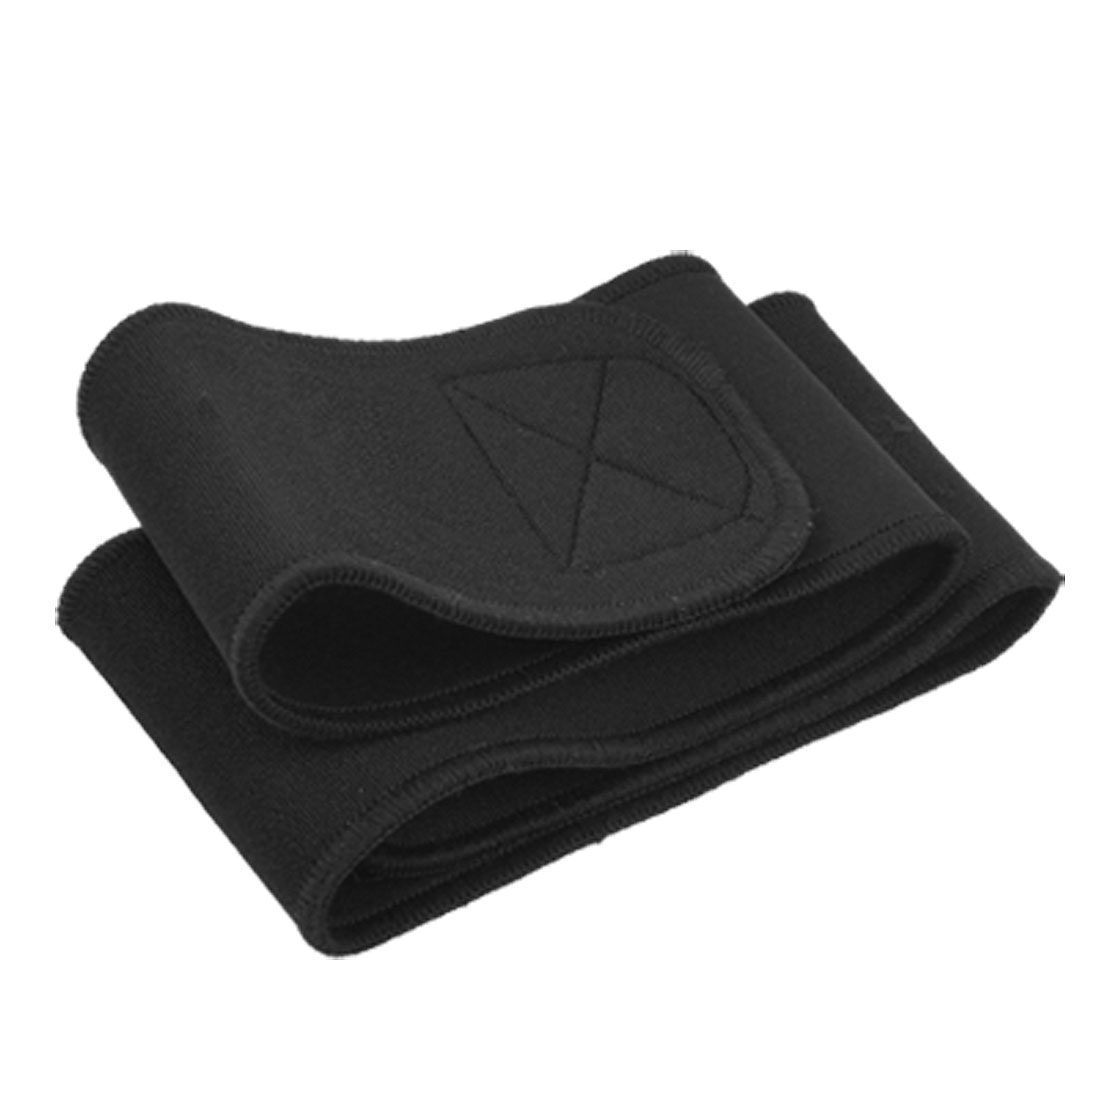 Unisex Black Neopreno Hook and Loop Fastener Waist Band Support Guard